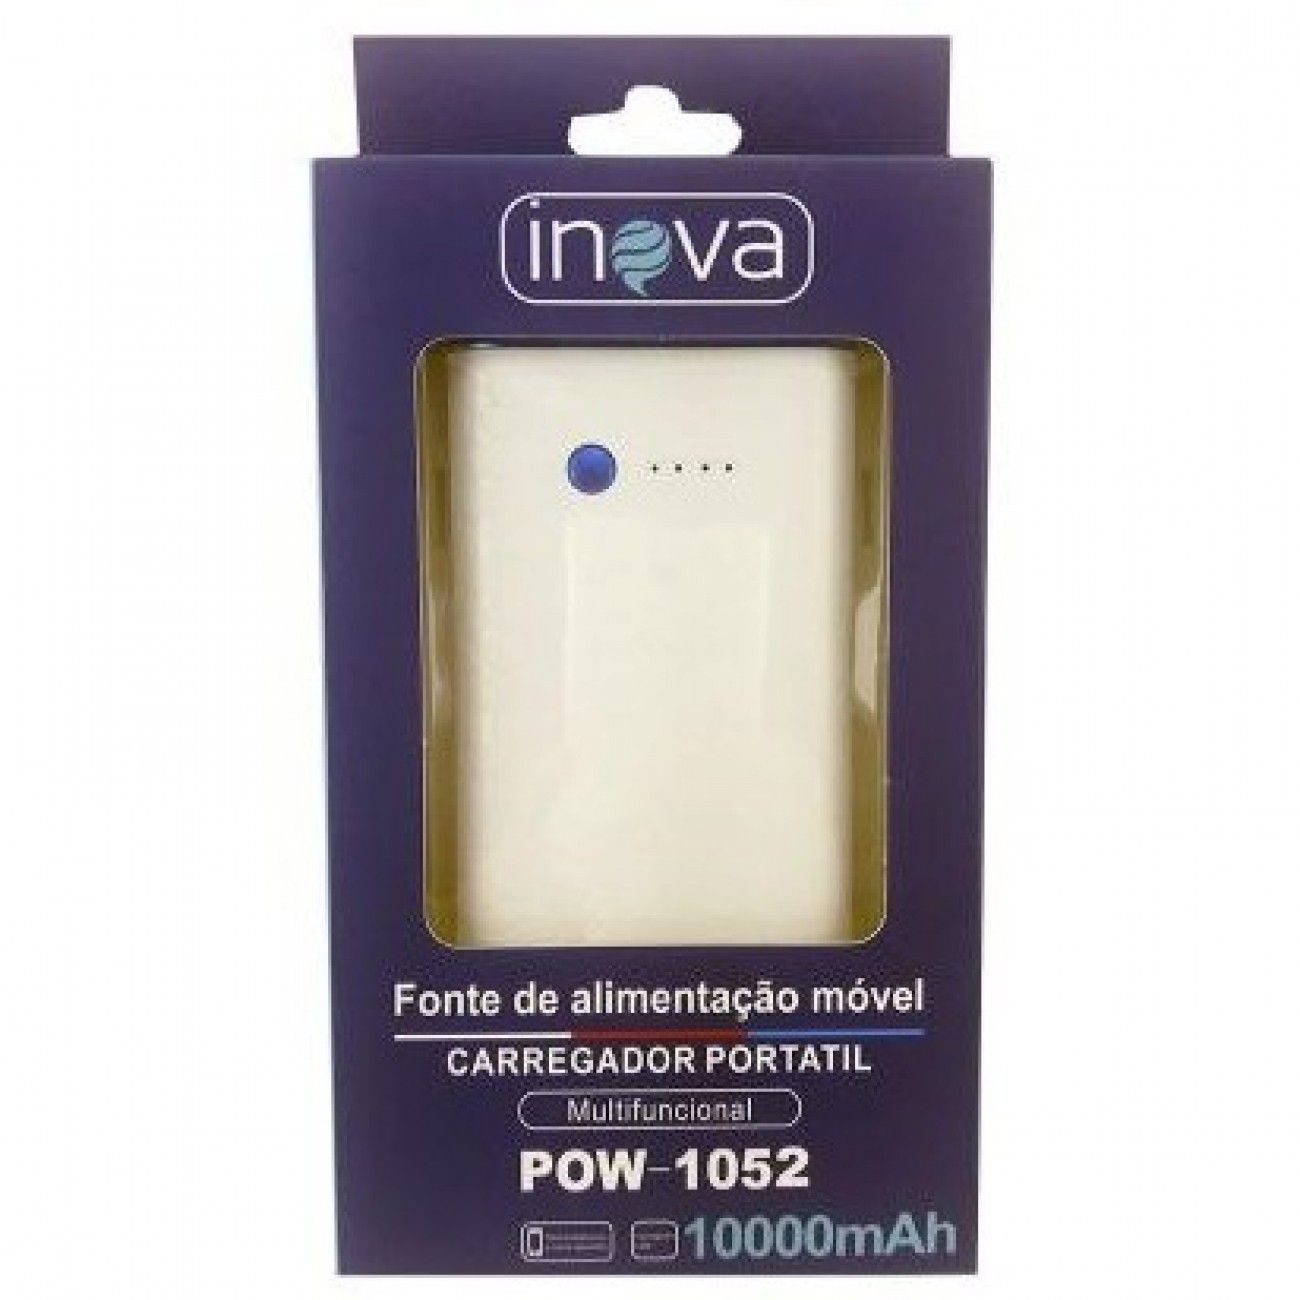 Carregador Power Bank 10000ma Inova POW-1052